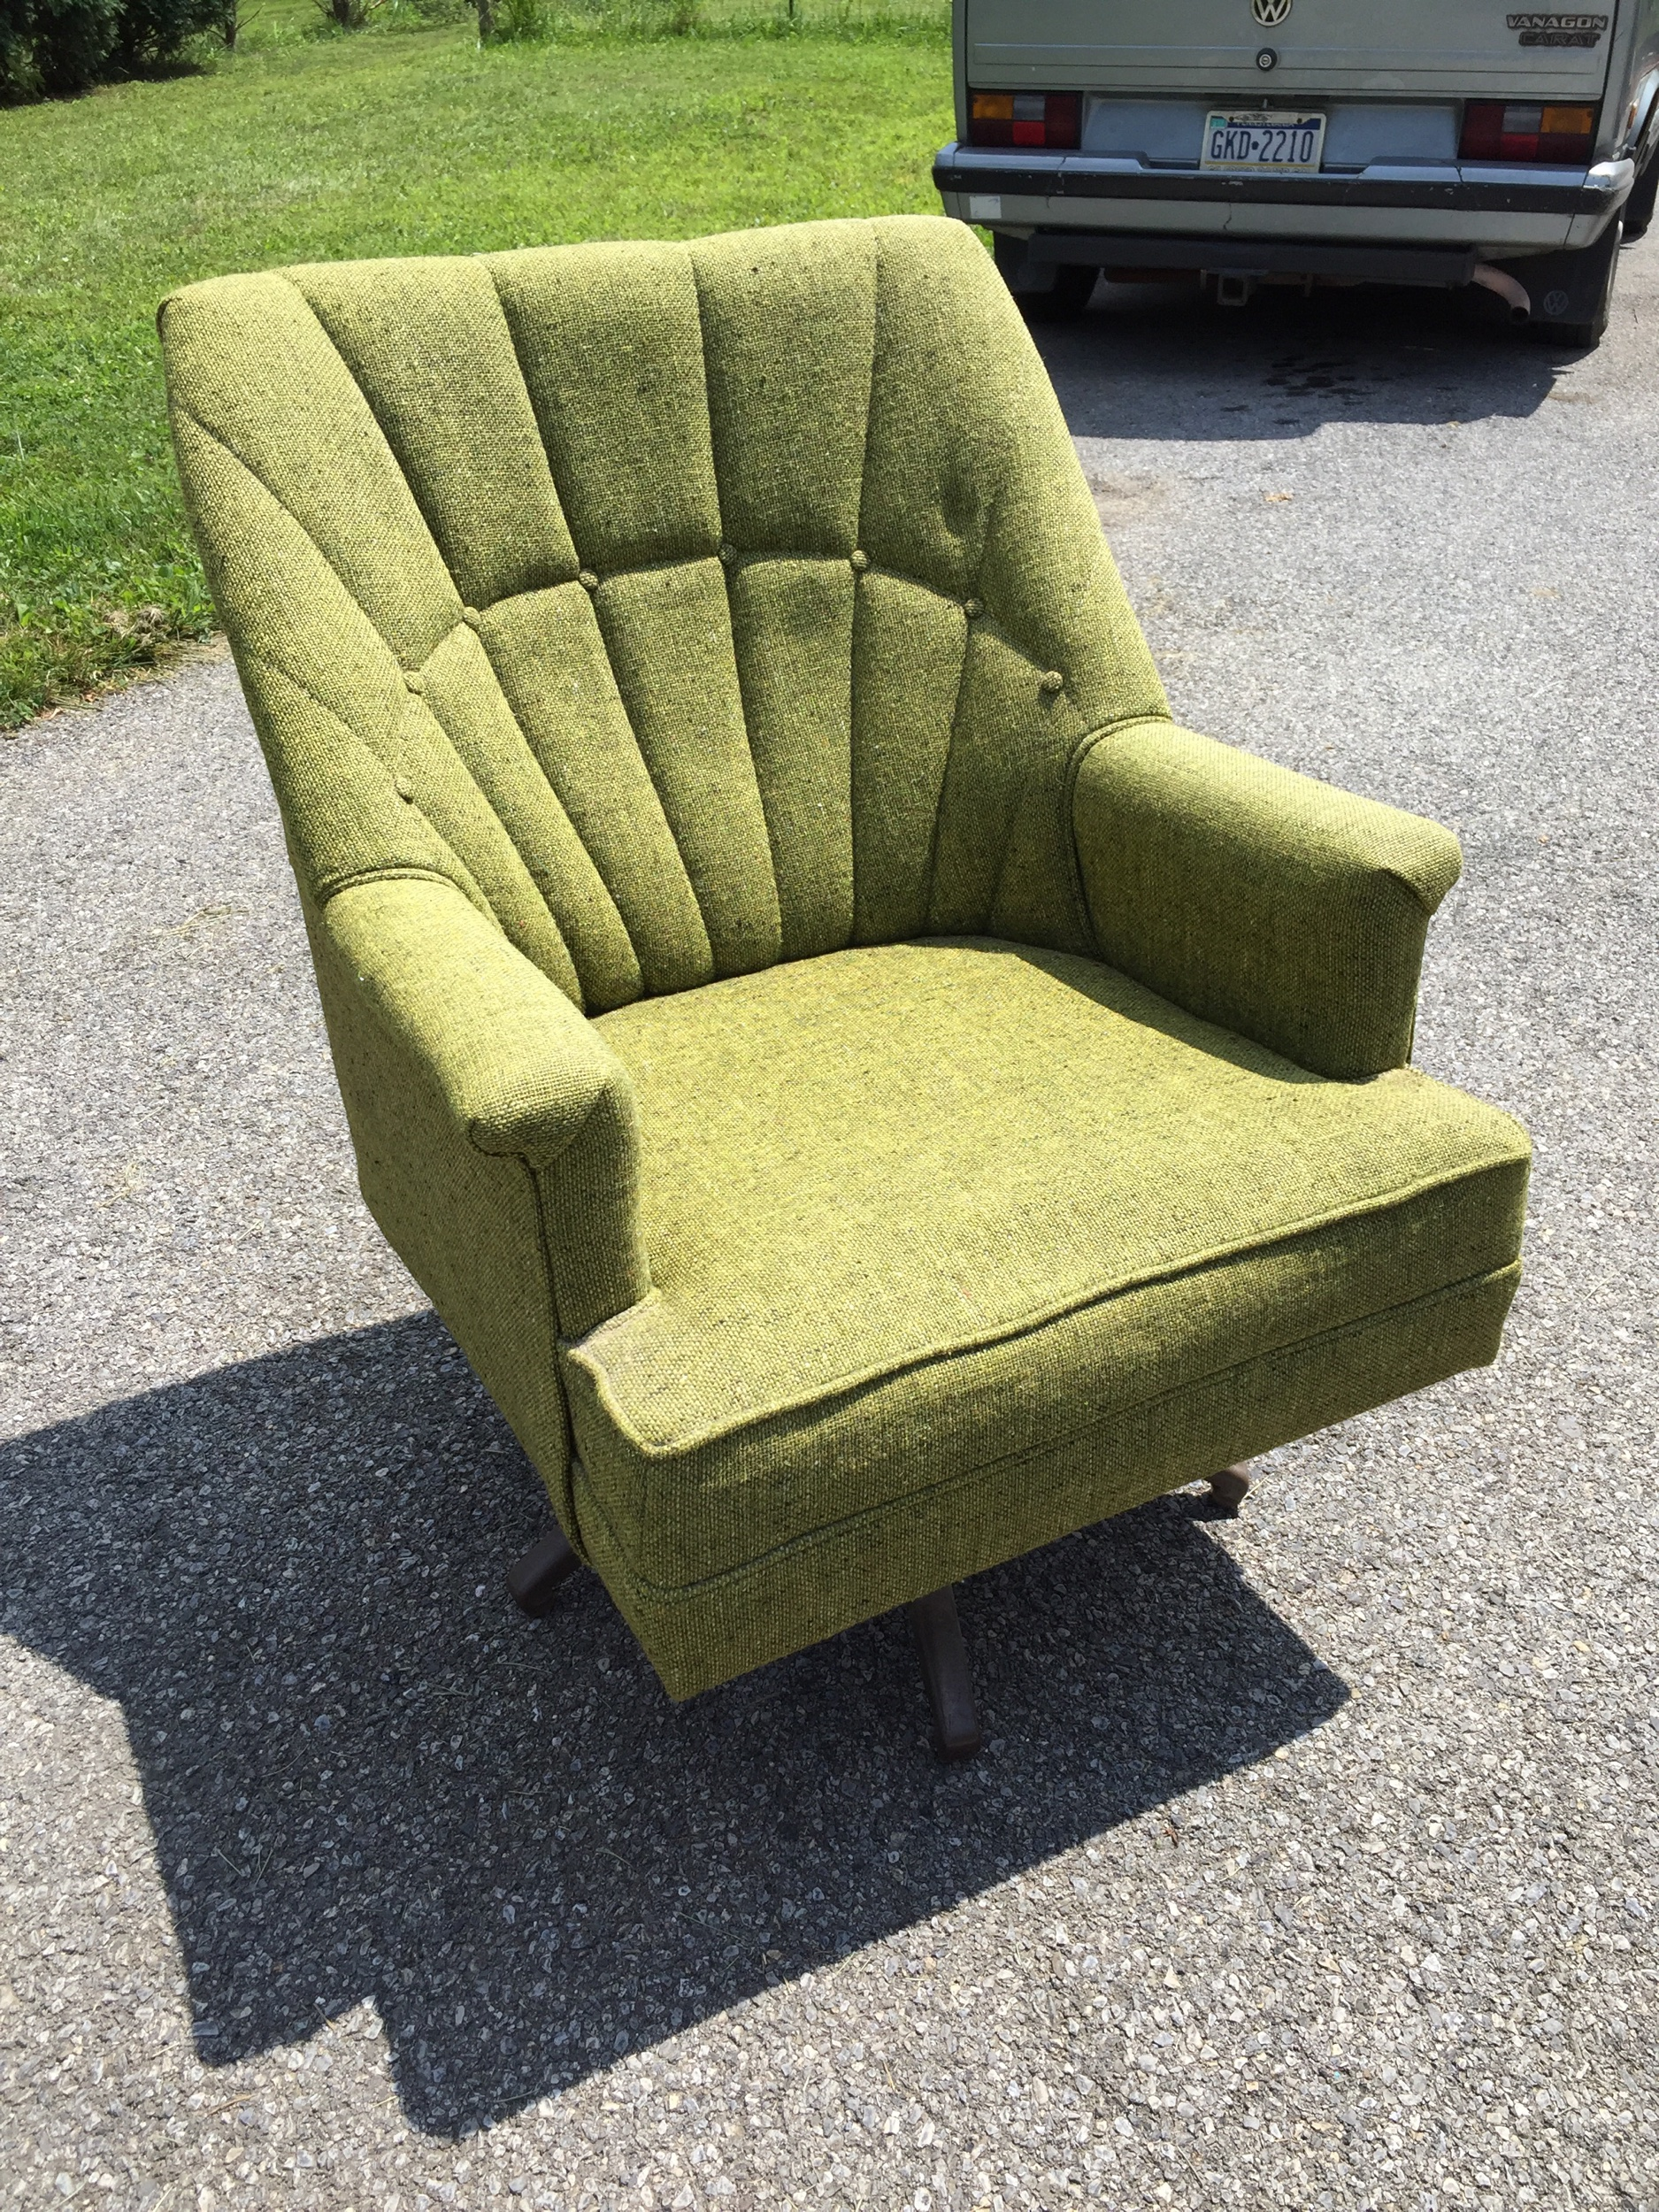 Super cute green tweed swivel rocker. Metal baSe, wood frame. Fabric in very good vintage condition. As always, i clean and sanitiZe Begore shipping and delivery.